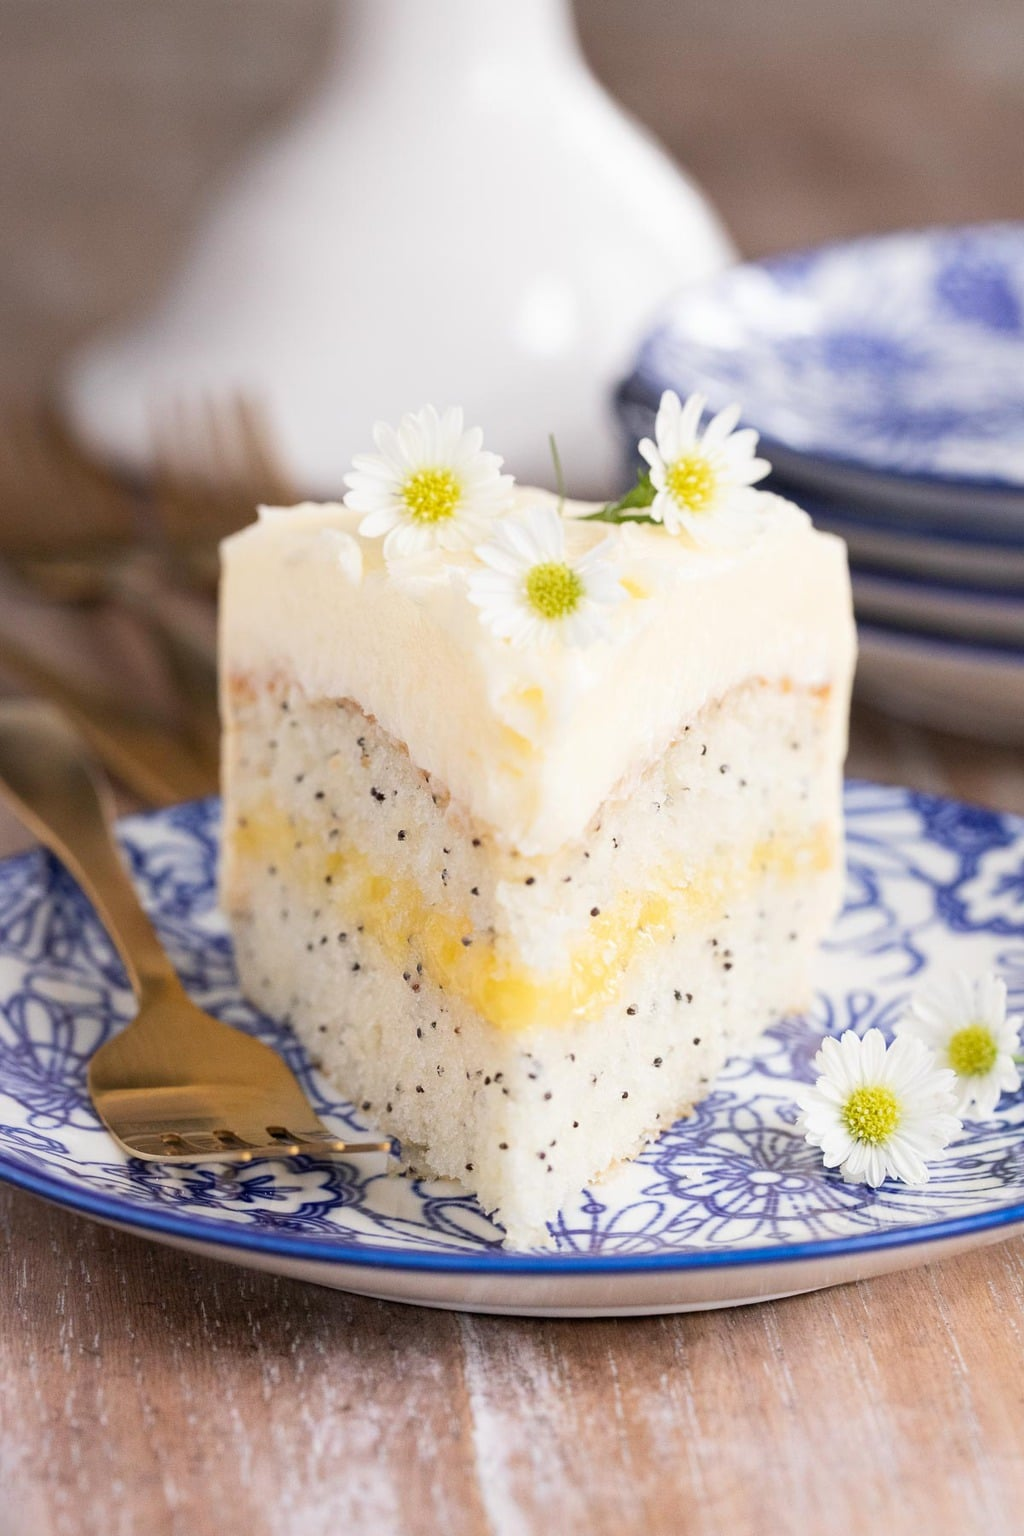 Closeup of a slice of Lemon Curd Poppy Seed Cake on a blue and white patterned plate.